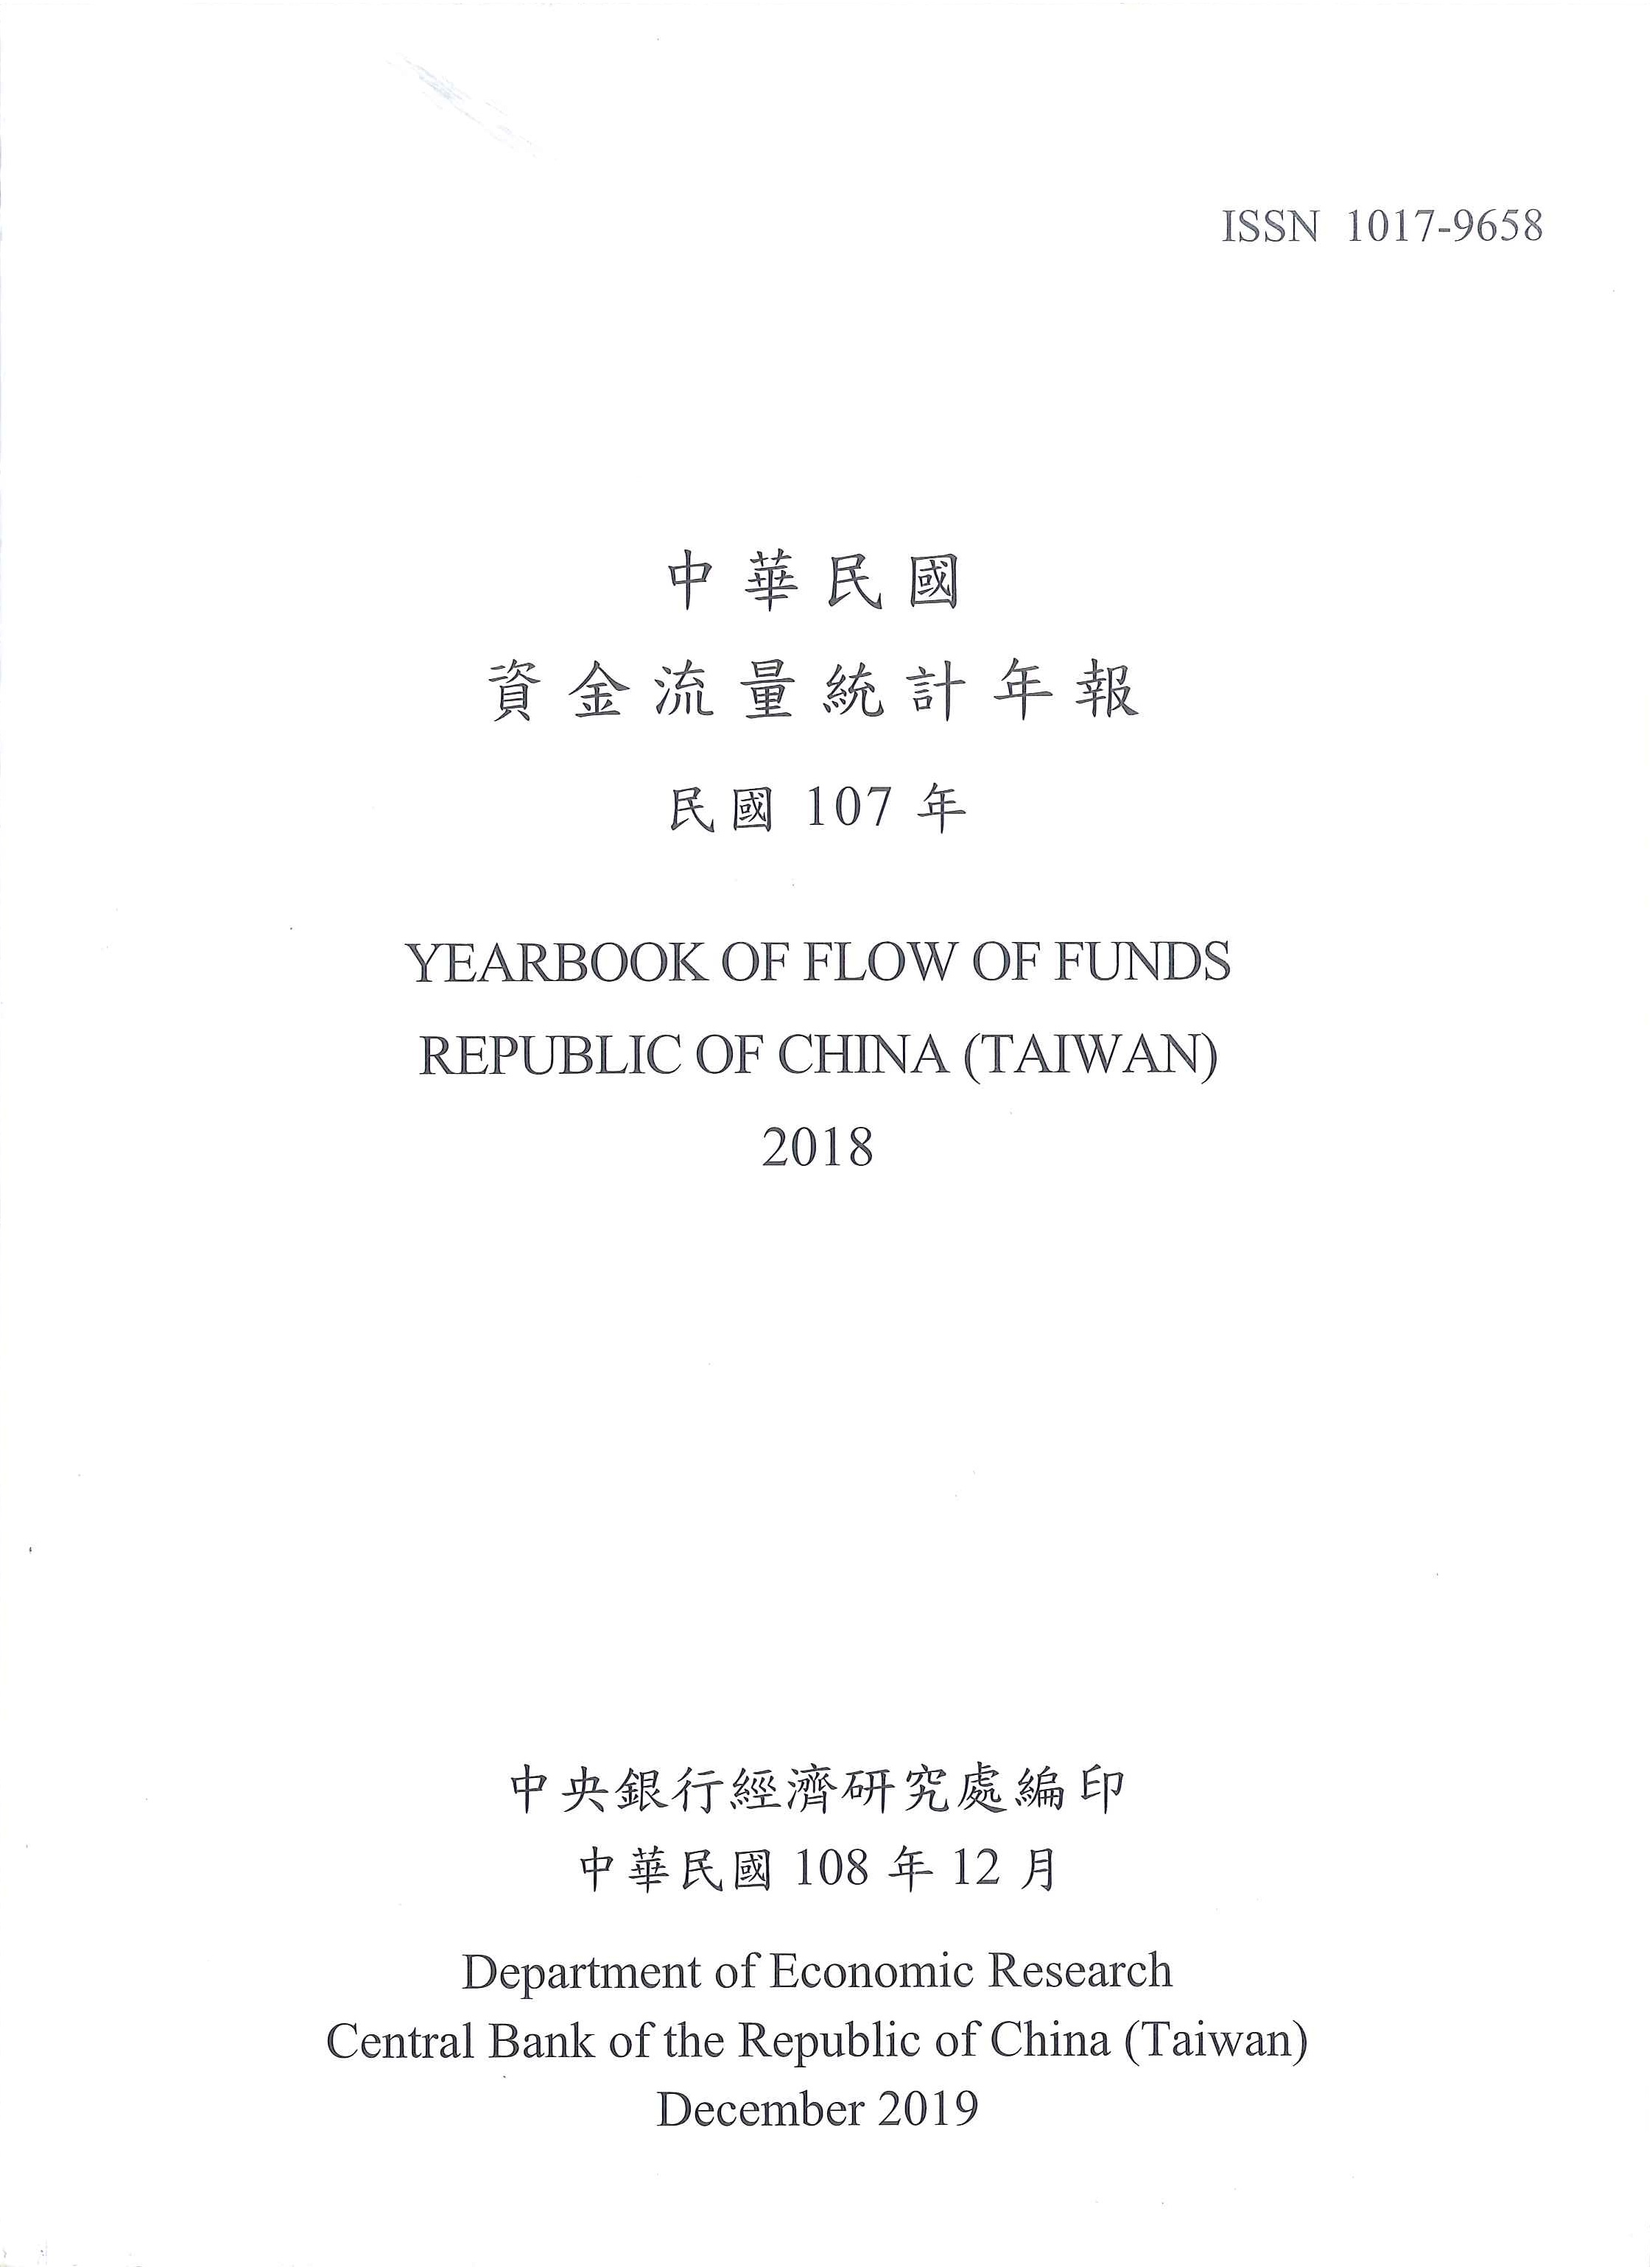 中華民國資金流量統計年報=Yearbook of flow of funds Republic of China (Taiwan)